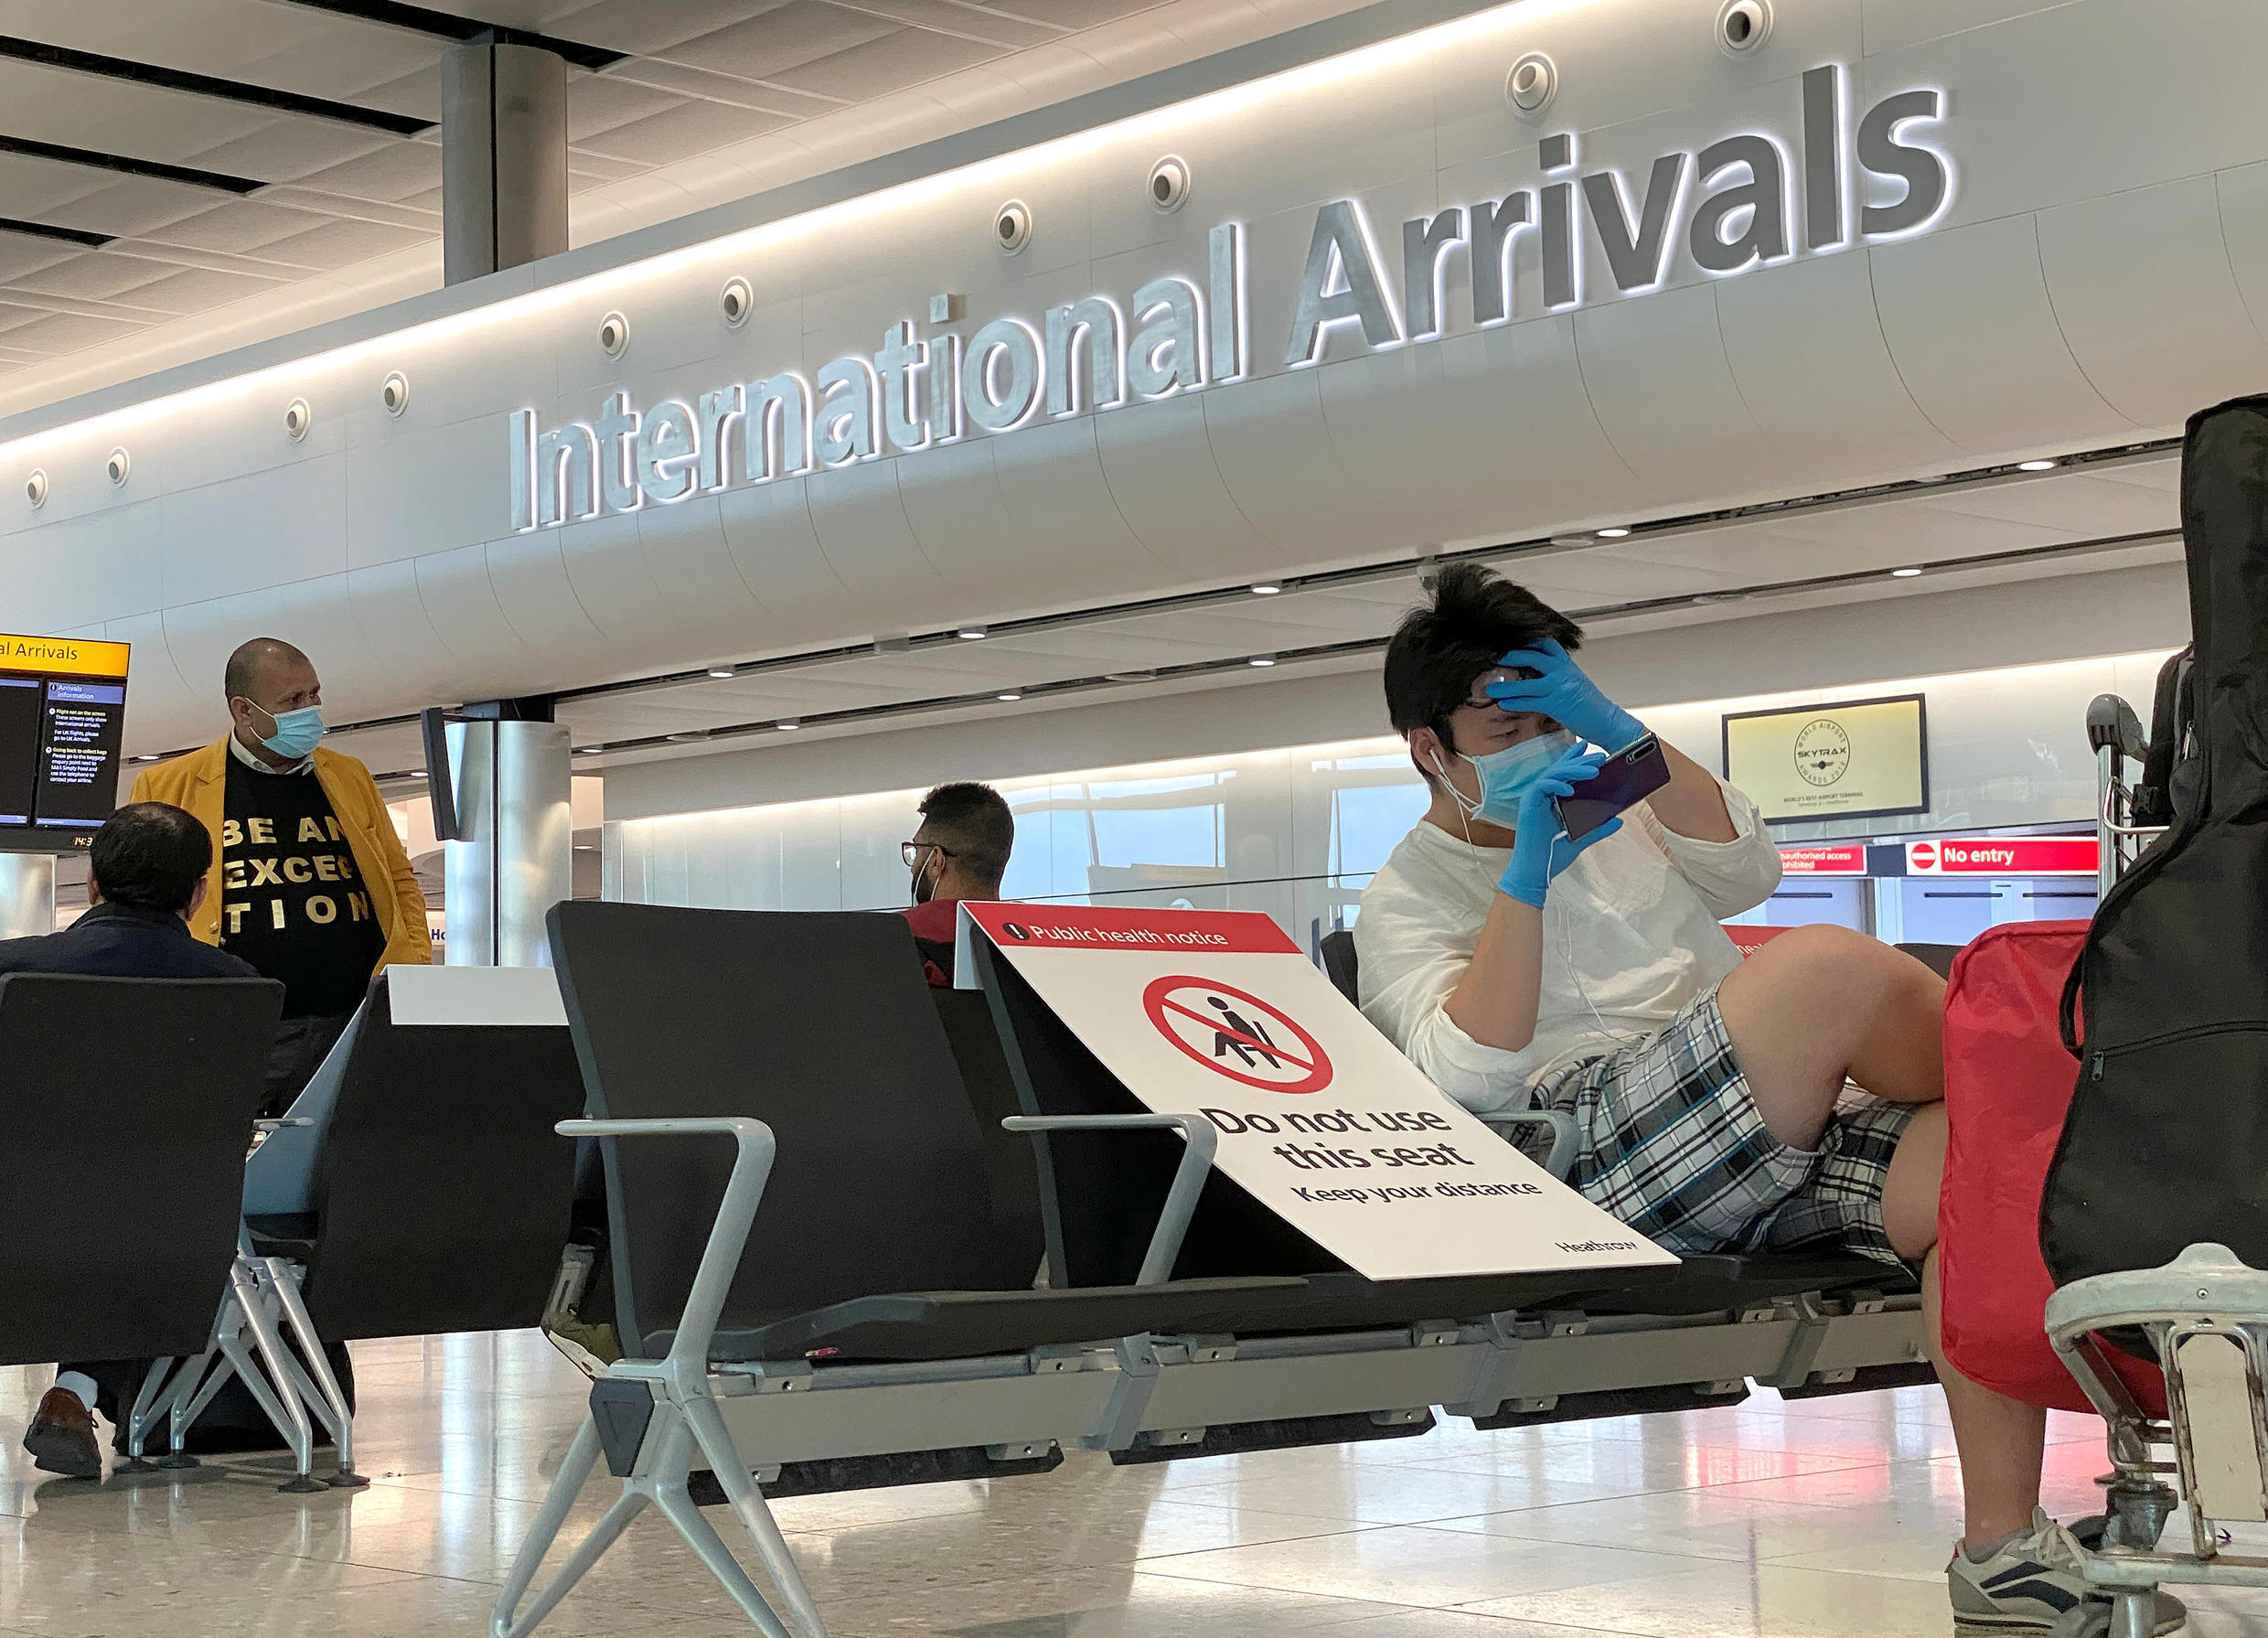 Passengers wearing protective face masks are seen at Heathrow Airport, amid the coronavirus disease (COVID-19) outbreak in London on May 22, 2020.